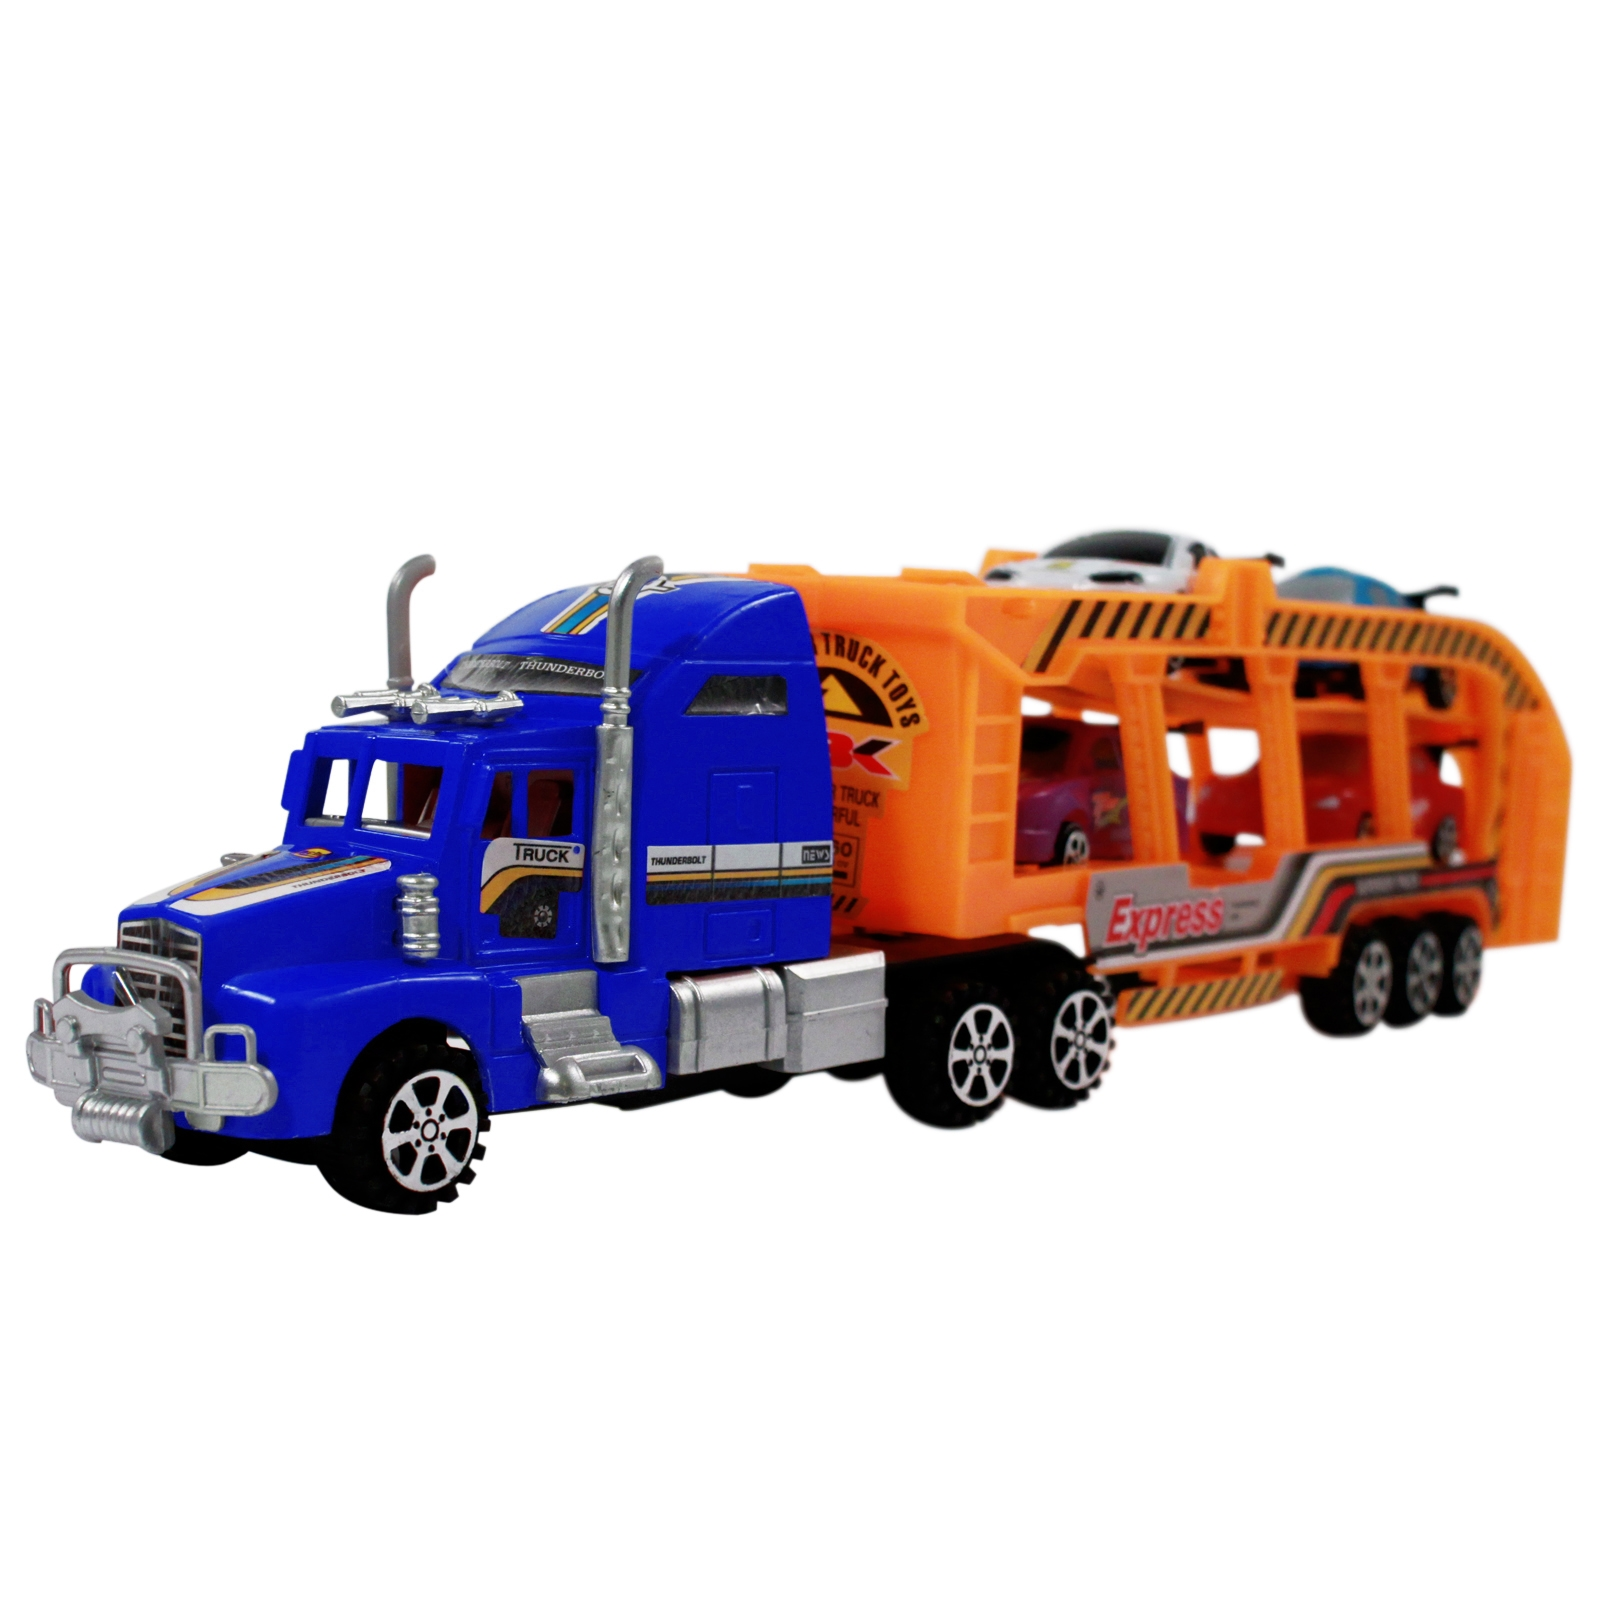 Large Toy Trucks For Boys : Unique big kid toys images children ideas